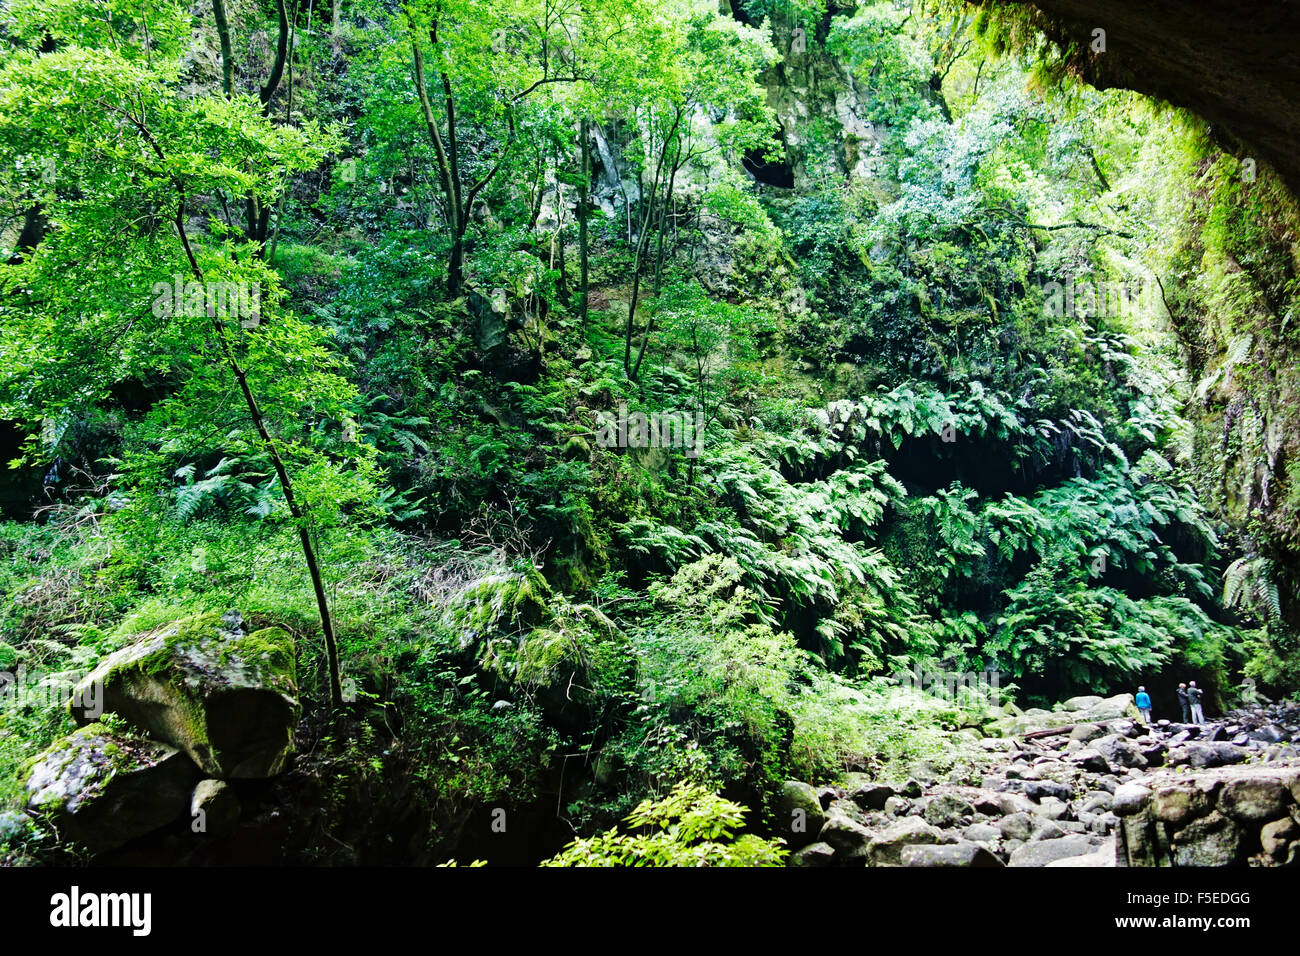 Laurel forest, Los Tilos Biosphere Reserve, La Palma, Canary Islands, Spain, Europe - Stock Image